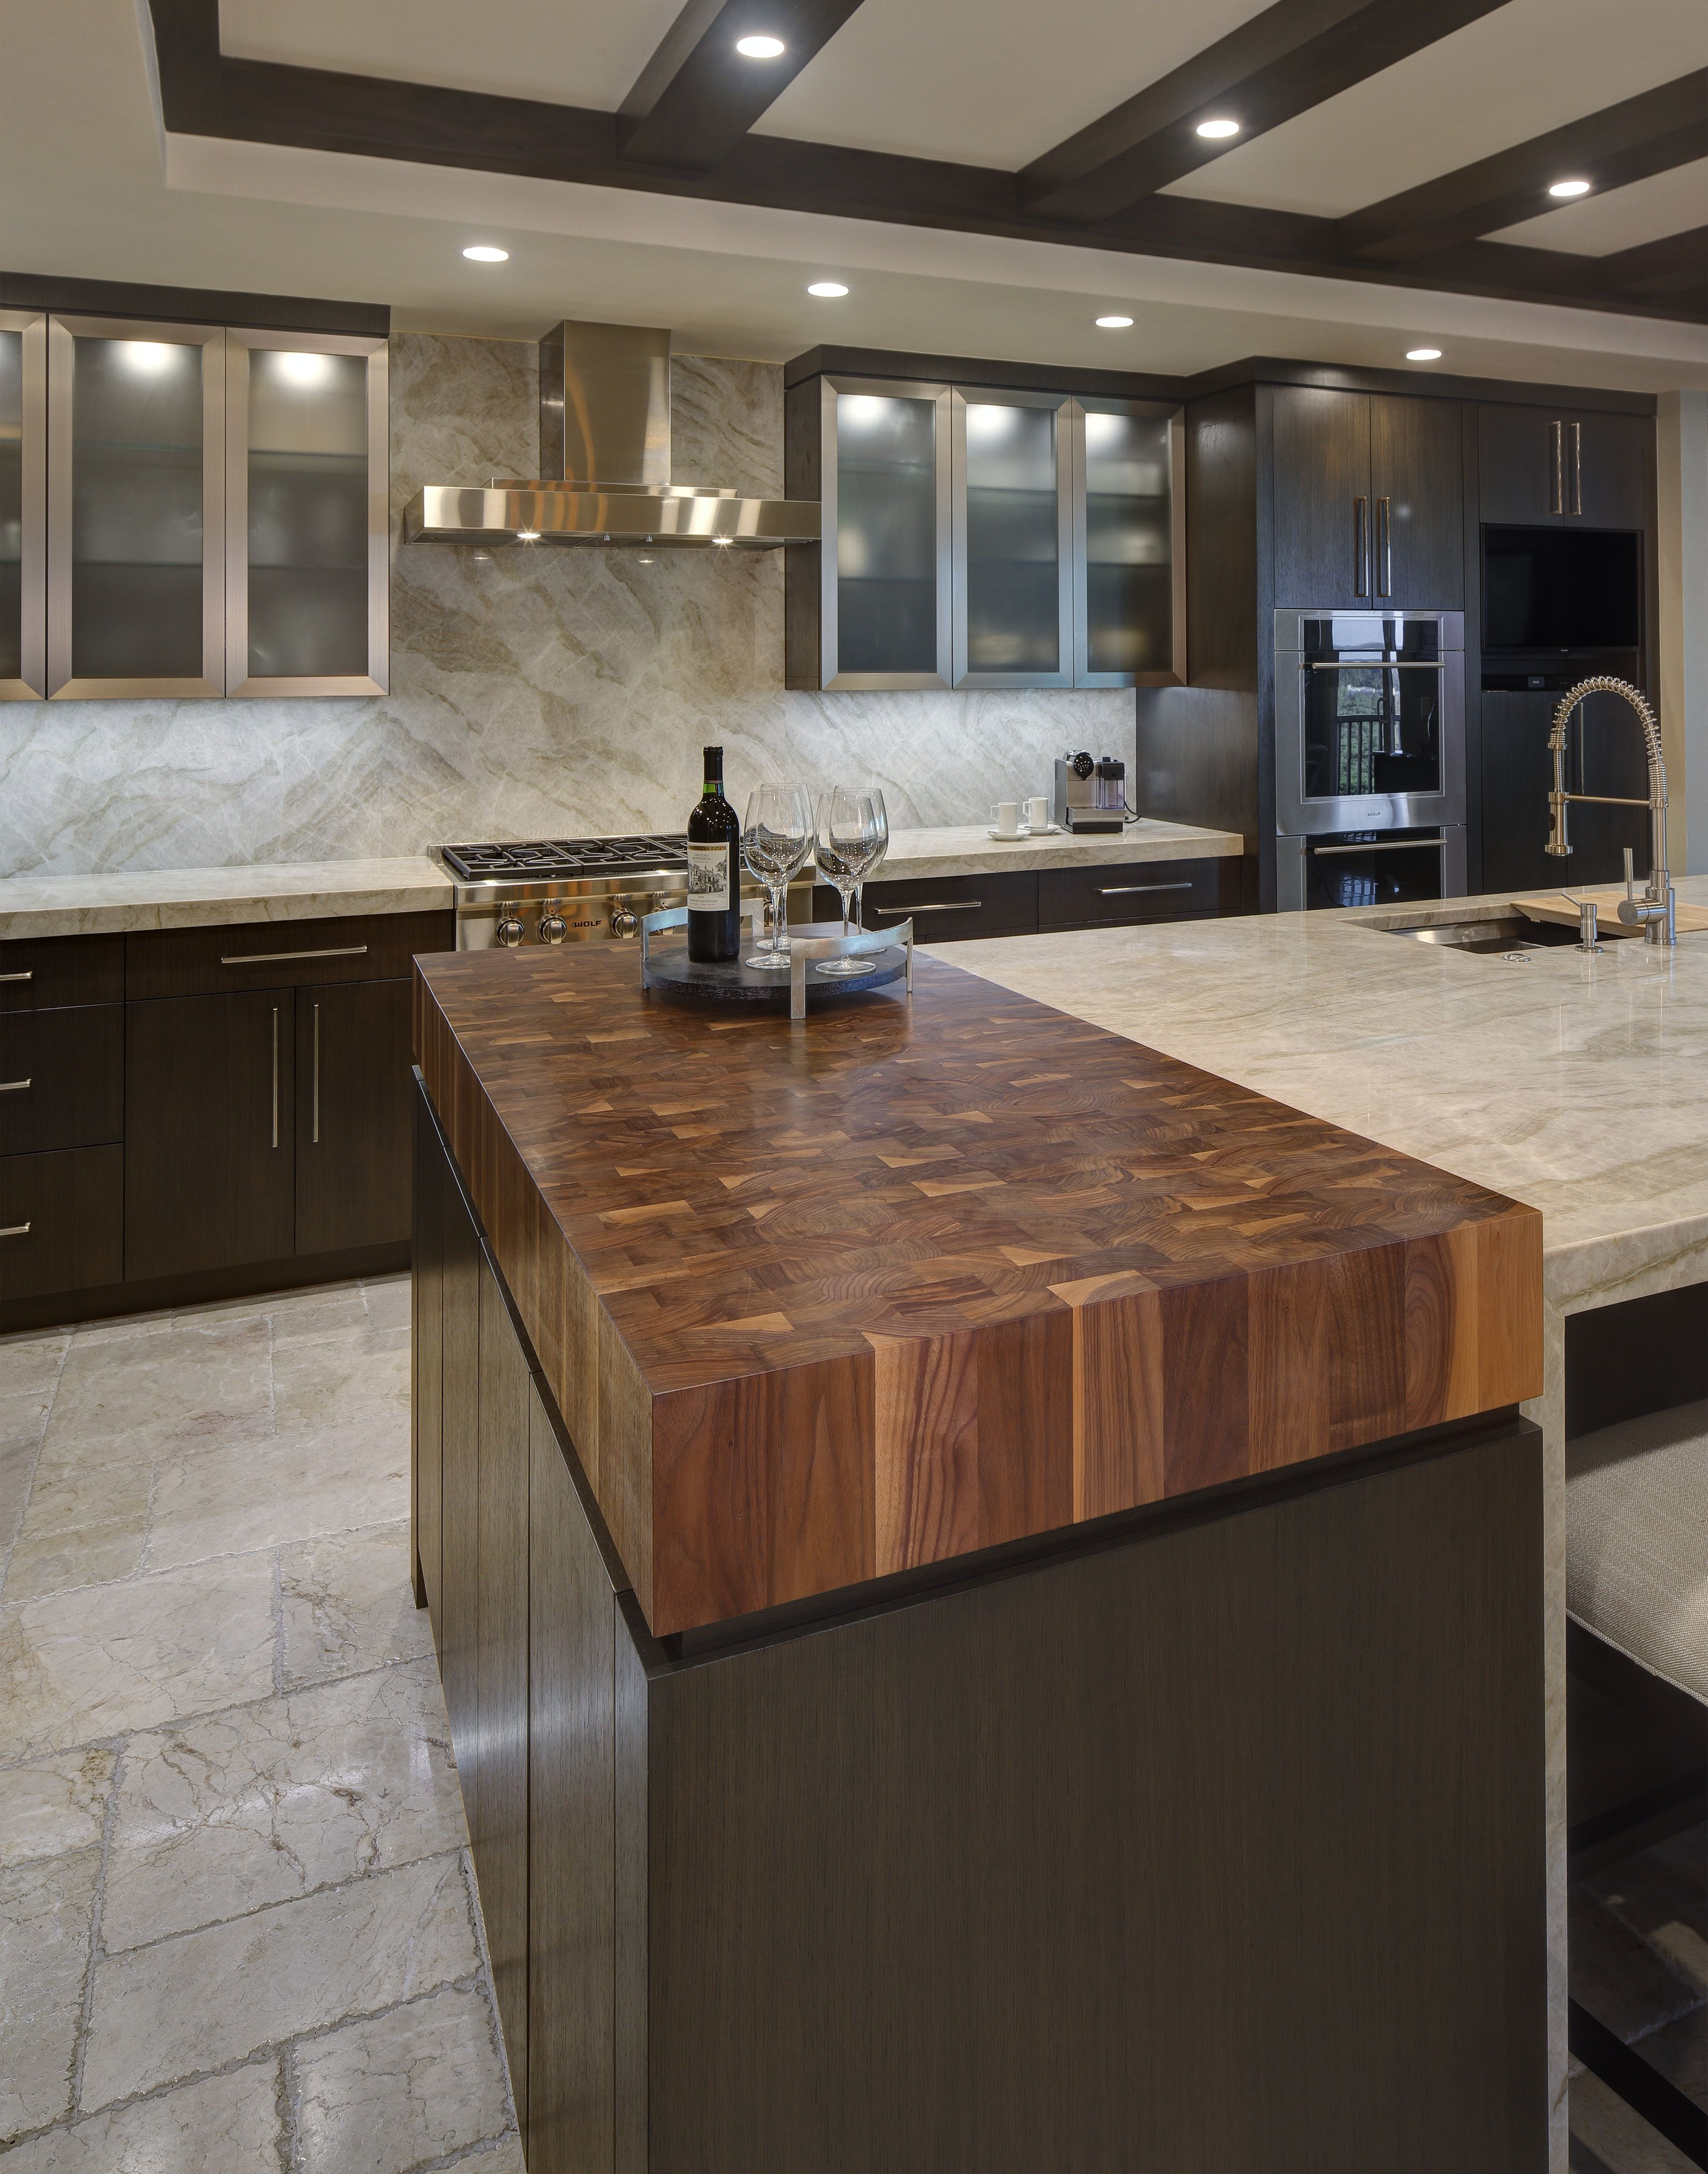 View a W Design's caption on Dering Hall (With images)  Kitchen design styles, Interior design